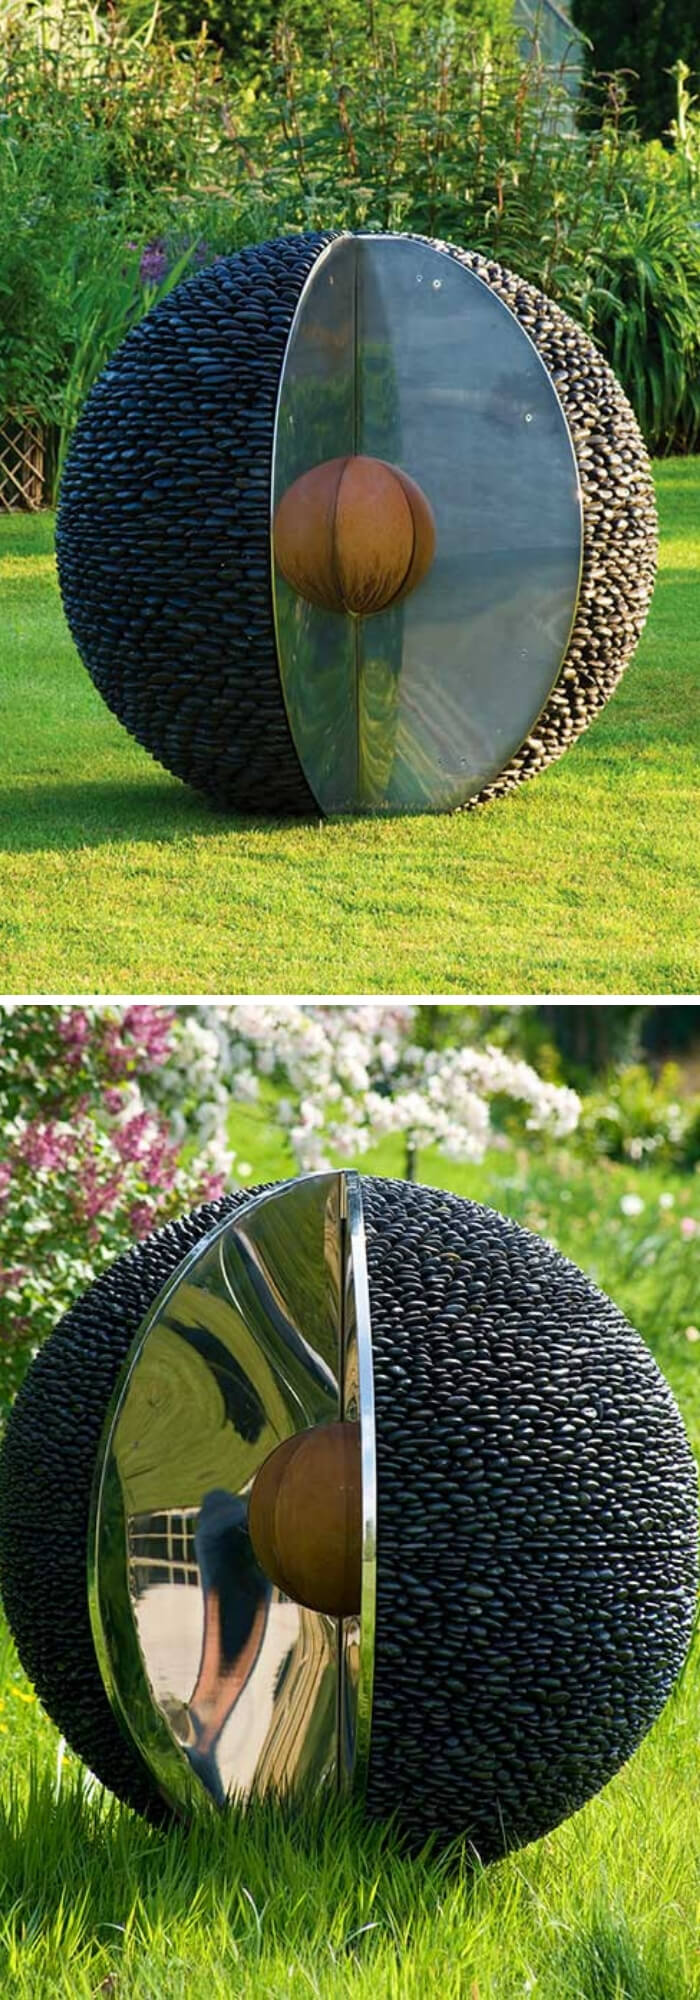 Black Stone Outdoor Spheres with Stainless Steel | Best DIY Garden Globe Ideas & Designs